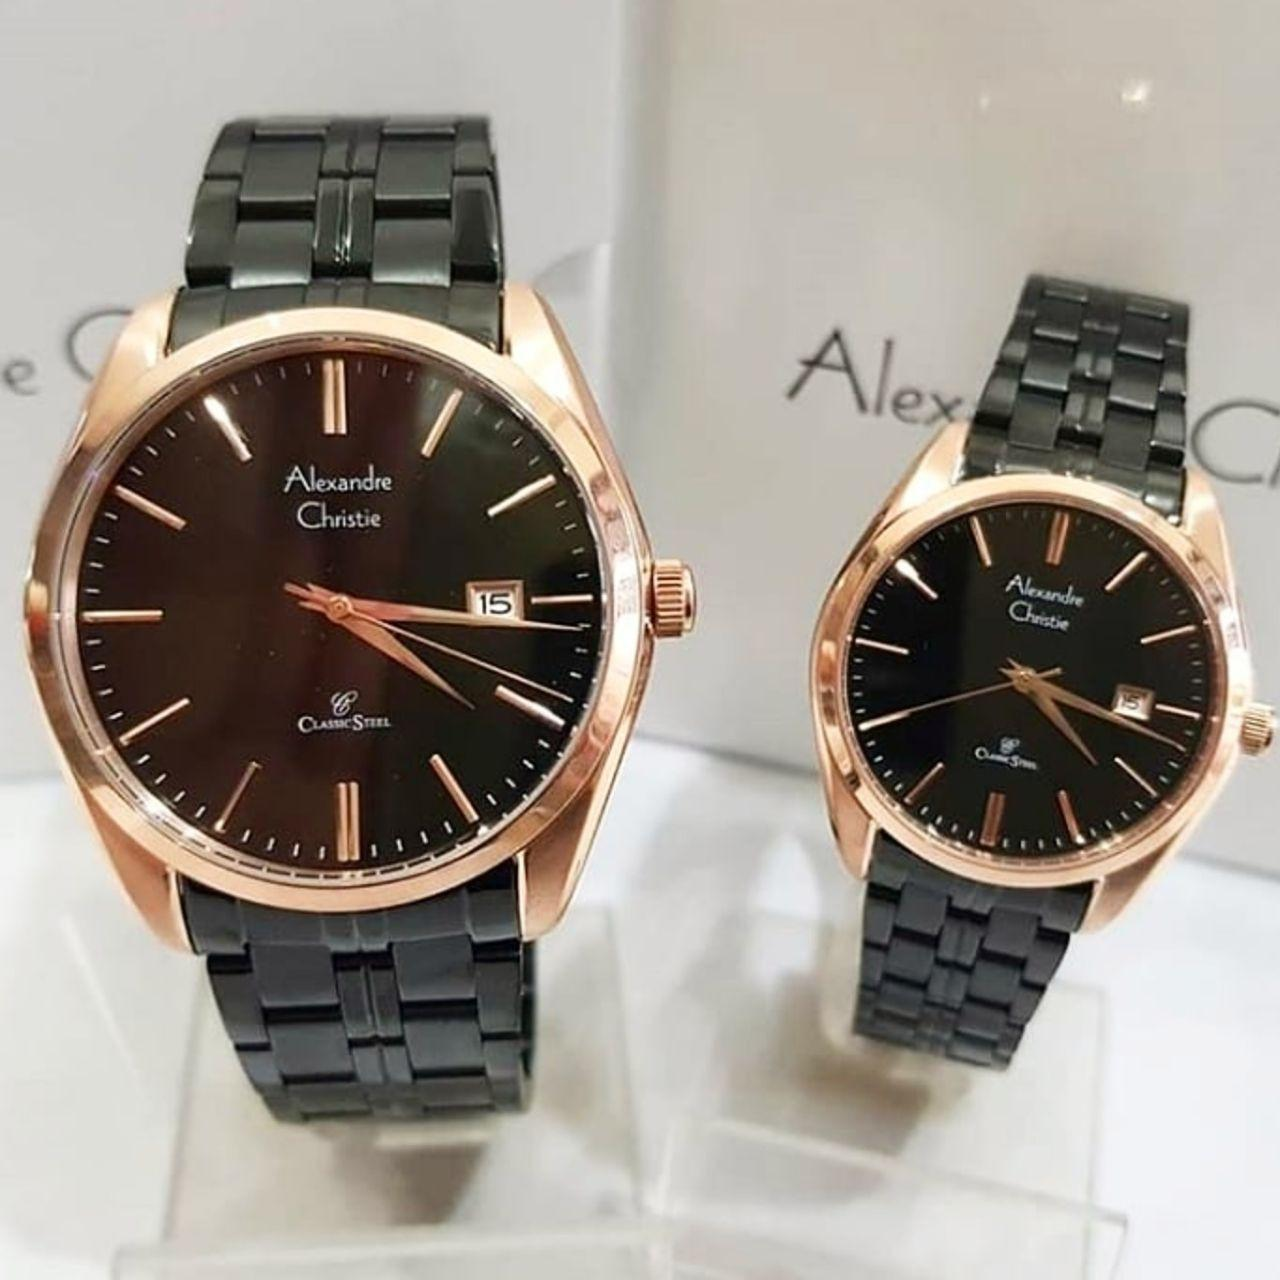 Cek Harga Baru Jam Tangan Couple Alexandre Christie Ac 8510 8333 Rose Gold Black Original Ac8558 Stainless Steel Hitam Rosegold